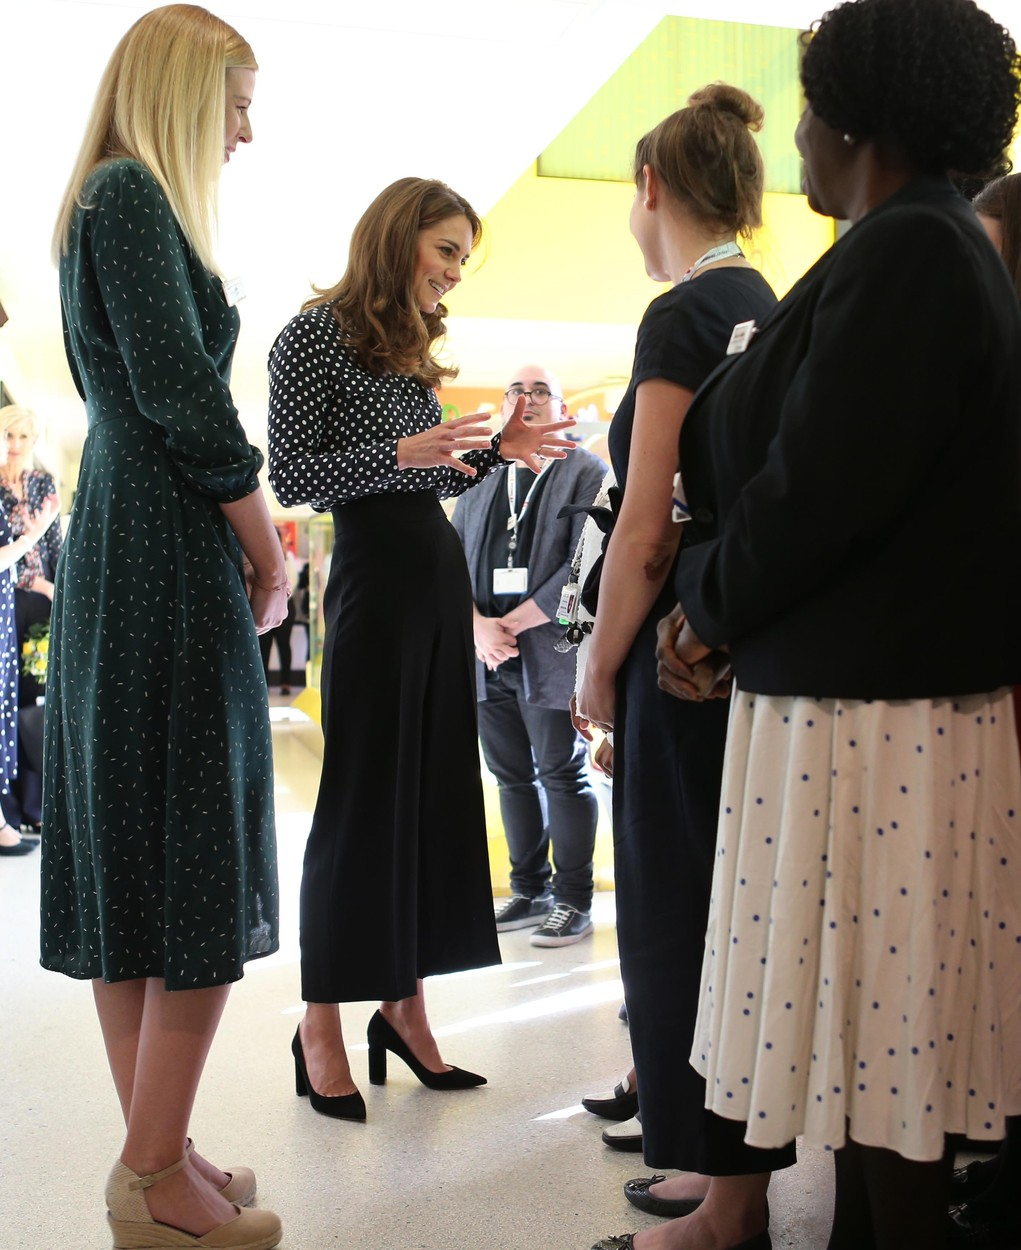 The Duchess of Cambridge meets the Southwark Family Nurse Partnership team during a visit to Sunshine House Children and Young People's Health and Development Centre in Camberwell, south London., Image: 471784226, License: Rights-managed, Restrictions: , Model Release: no, Credit line: Profimedia, Press Association